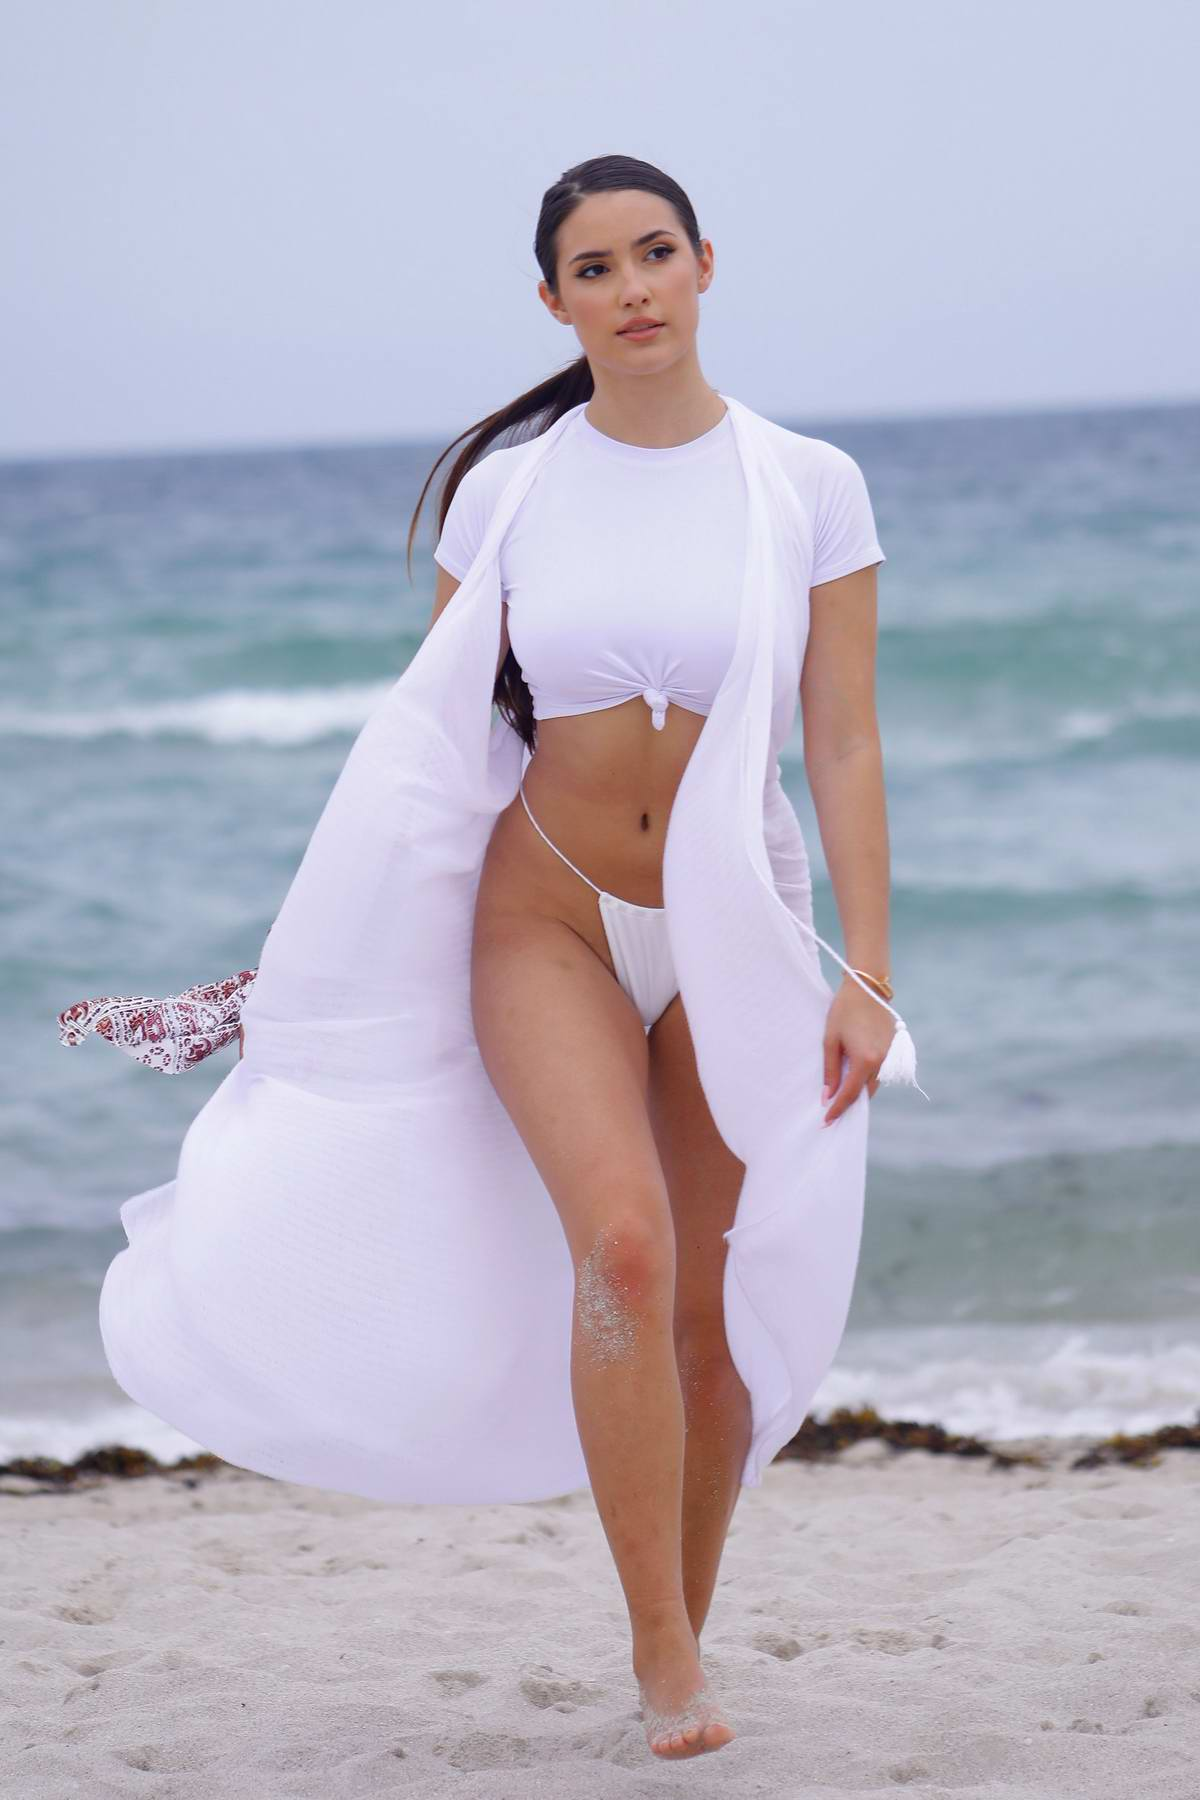 Tao Wickrath sizzles in a flowing white bikini on Miami Beach, Florida